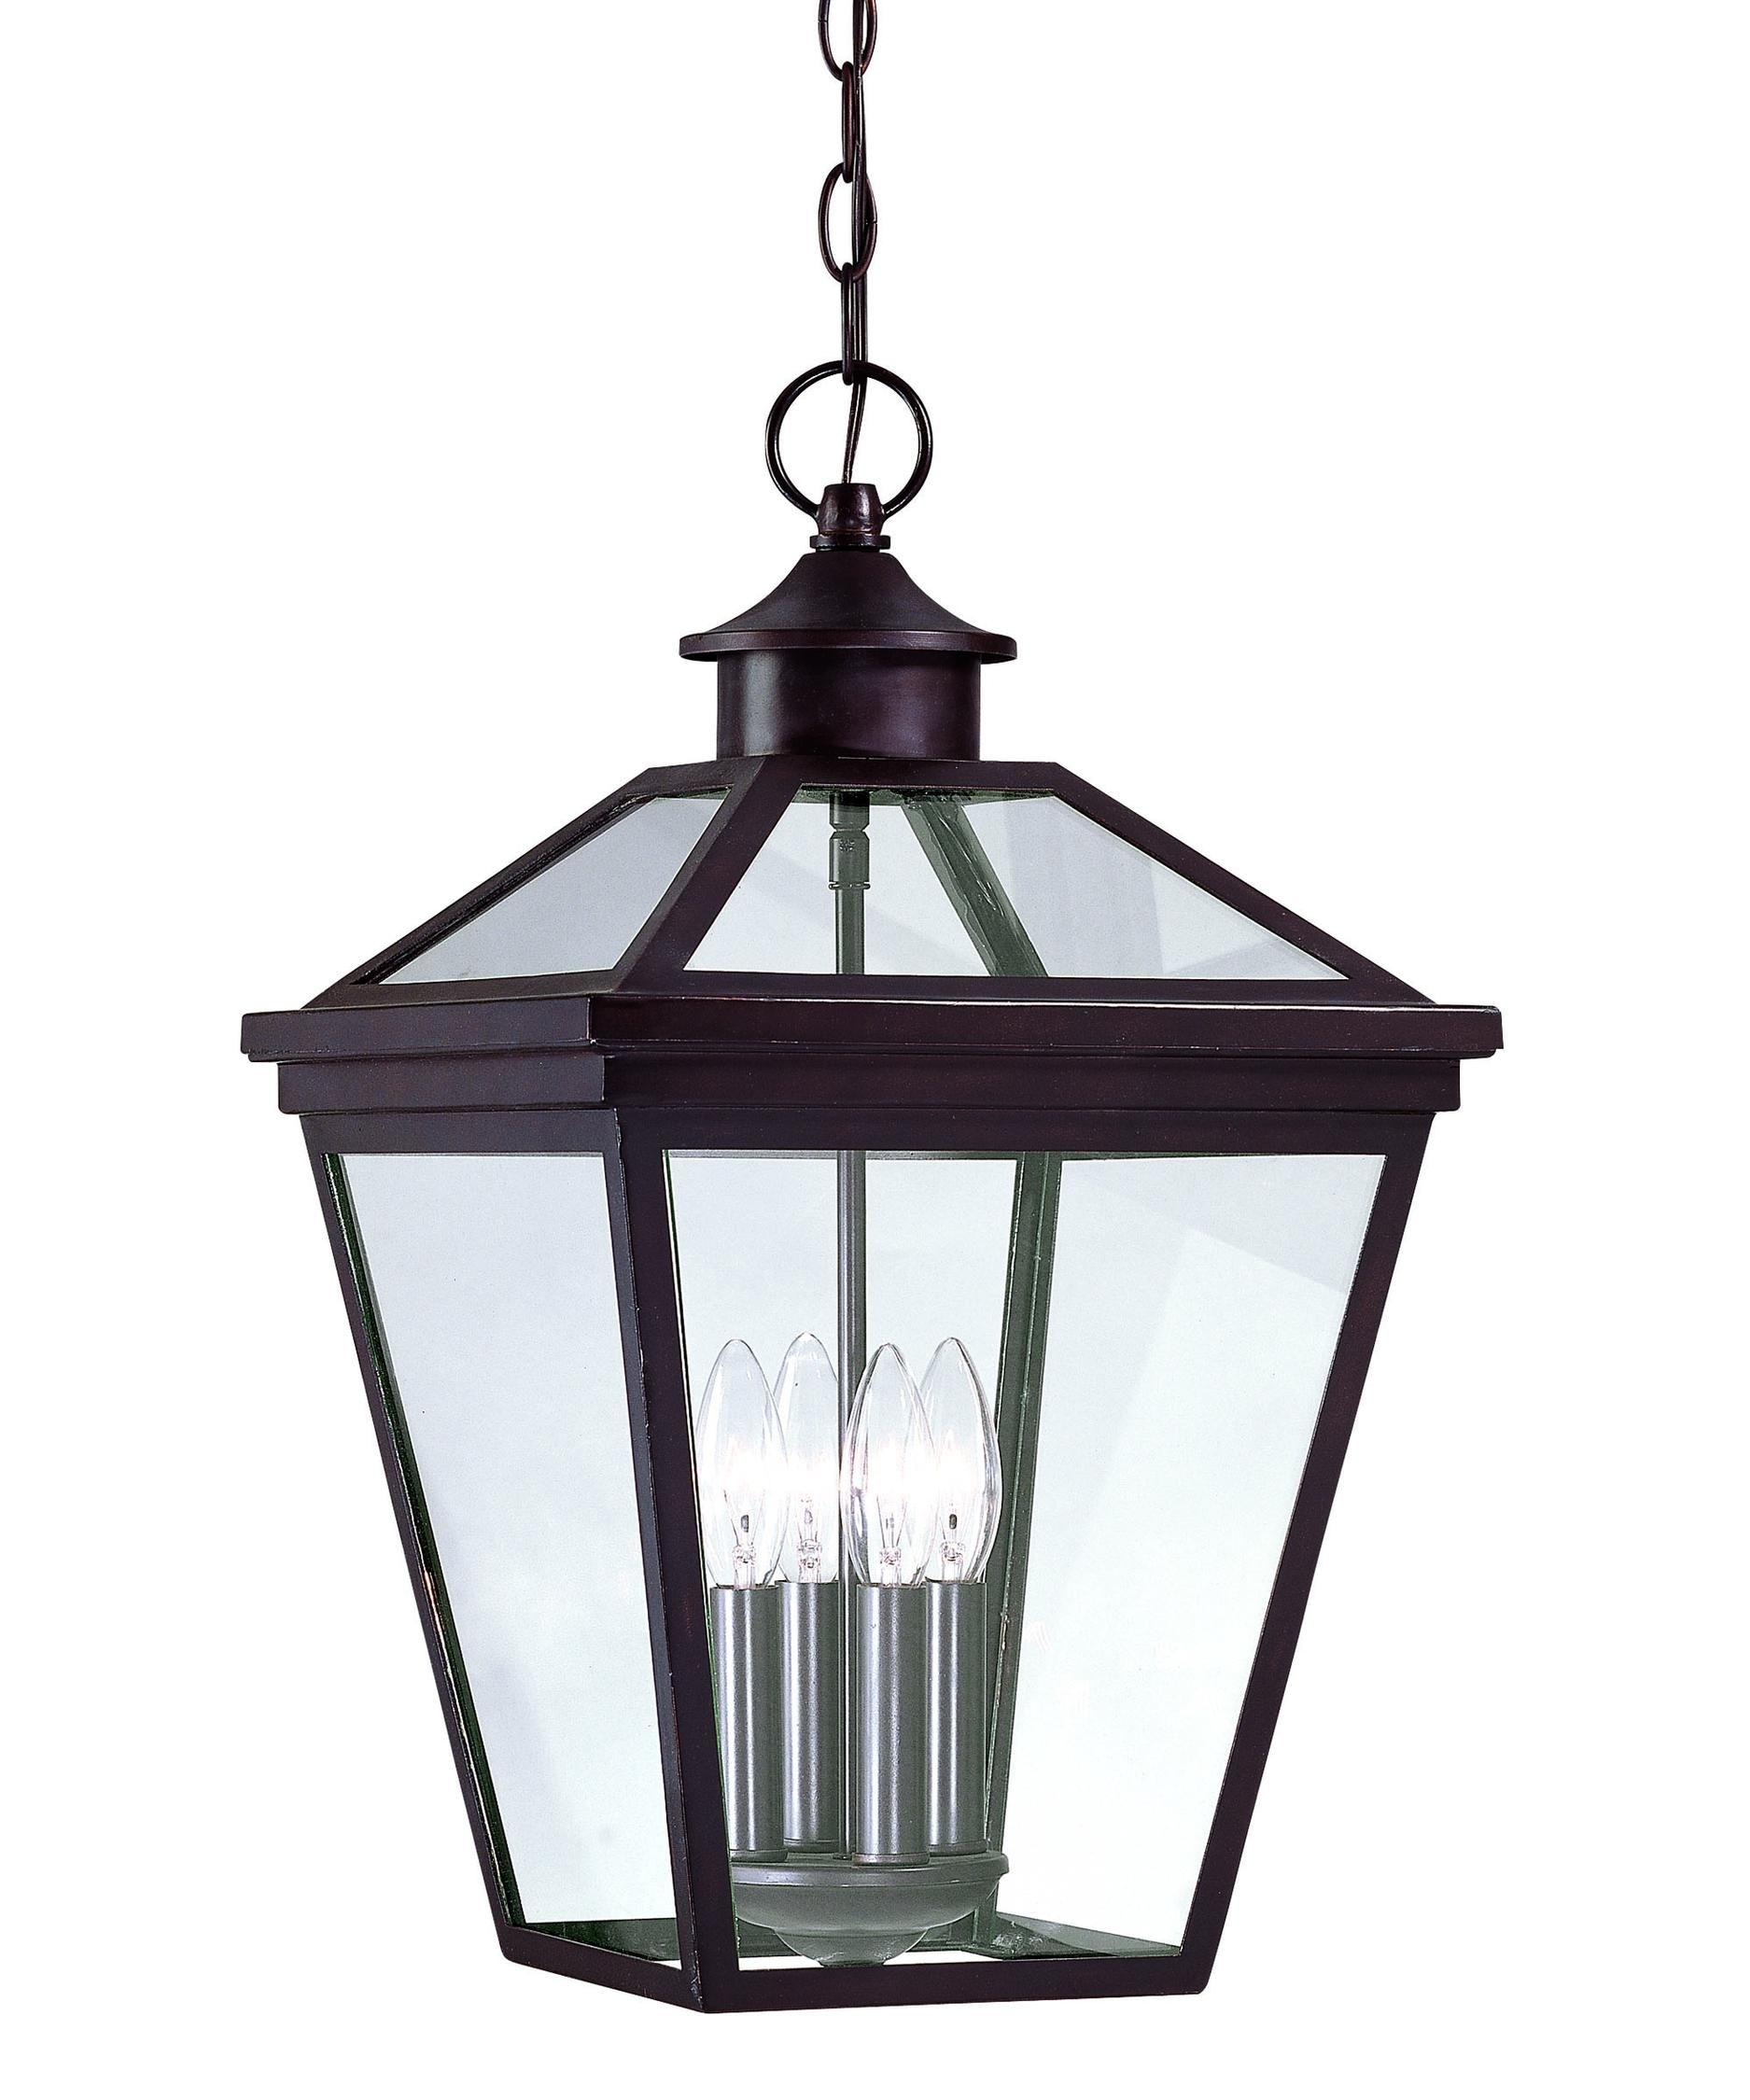 Savoy House Ellijay 4 Light Outdoor Hanging Lantern | Capitol With Outdoor Hanging Glass Lights (View 7 of 15)